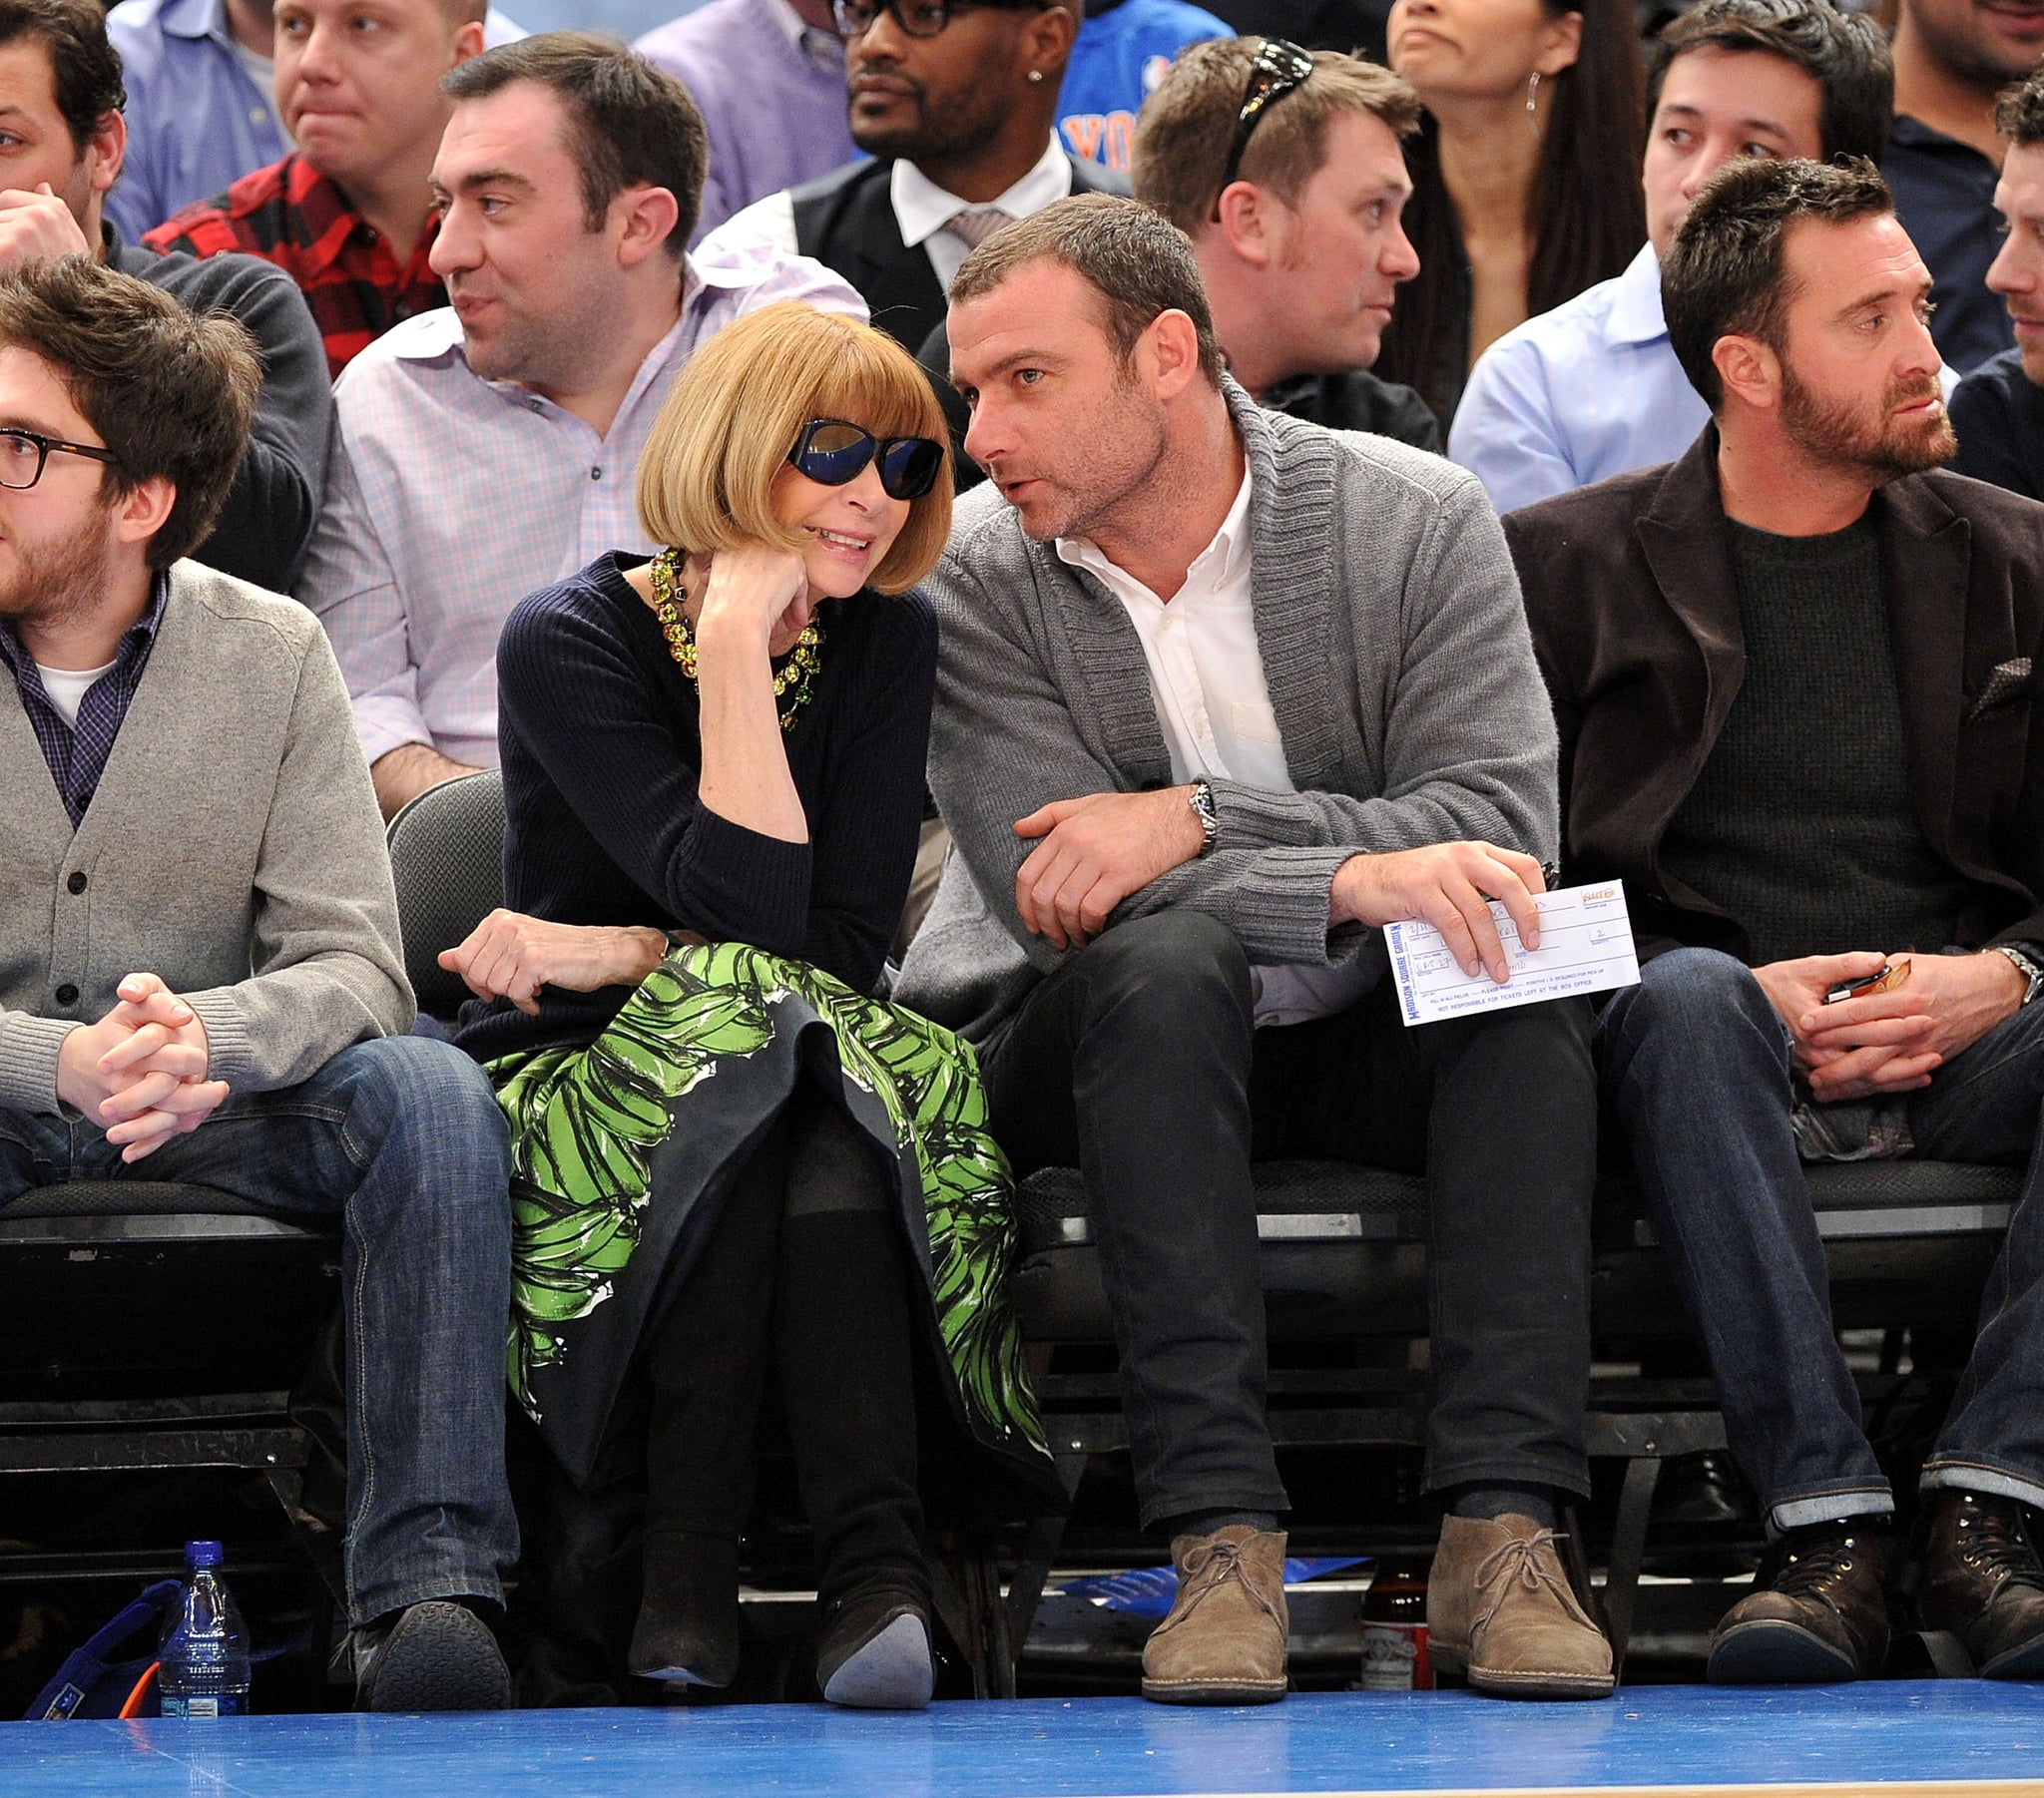 Anna Wintour sat front row with Liev Schreiber at a NY Knicks game in February 2011.